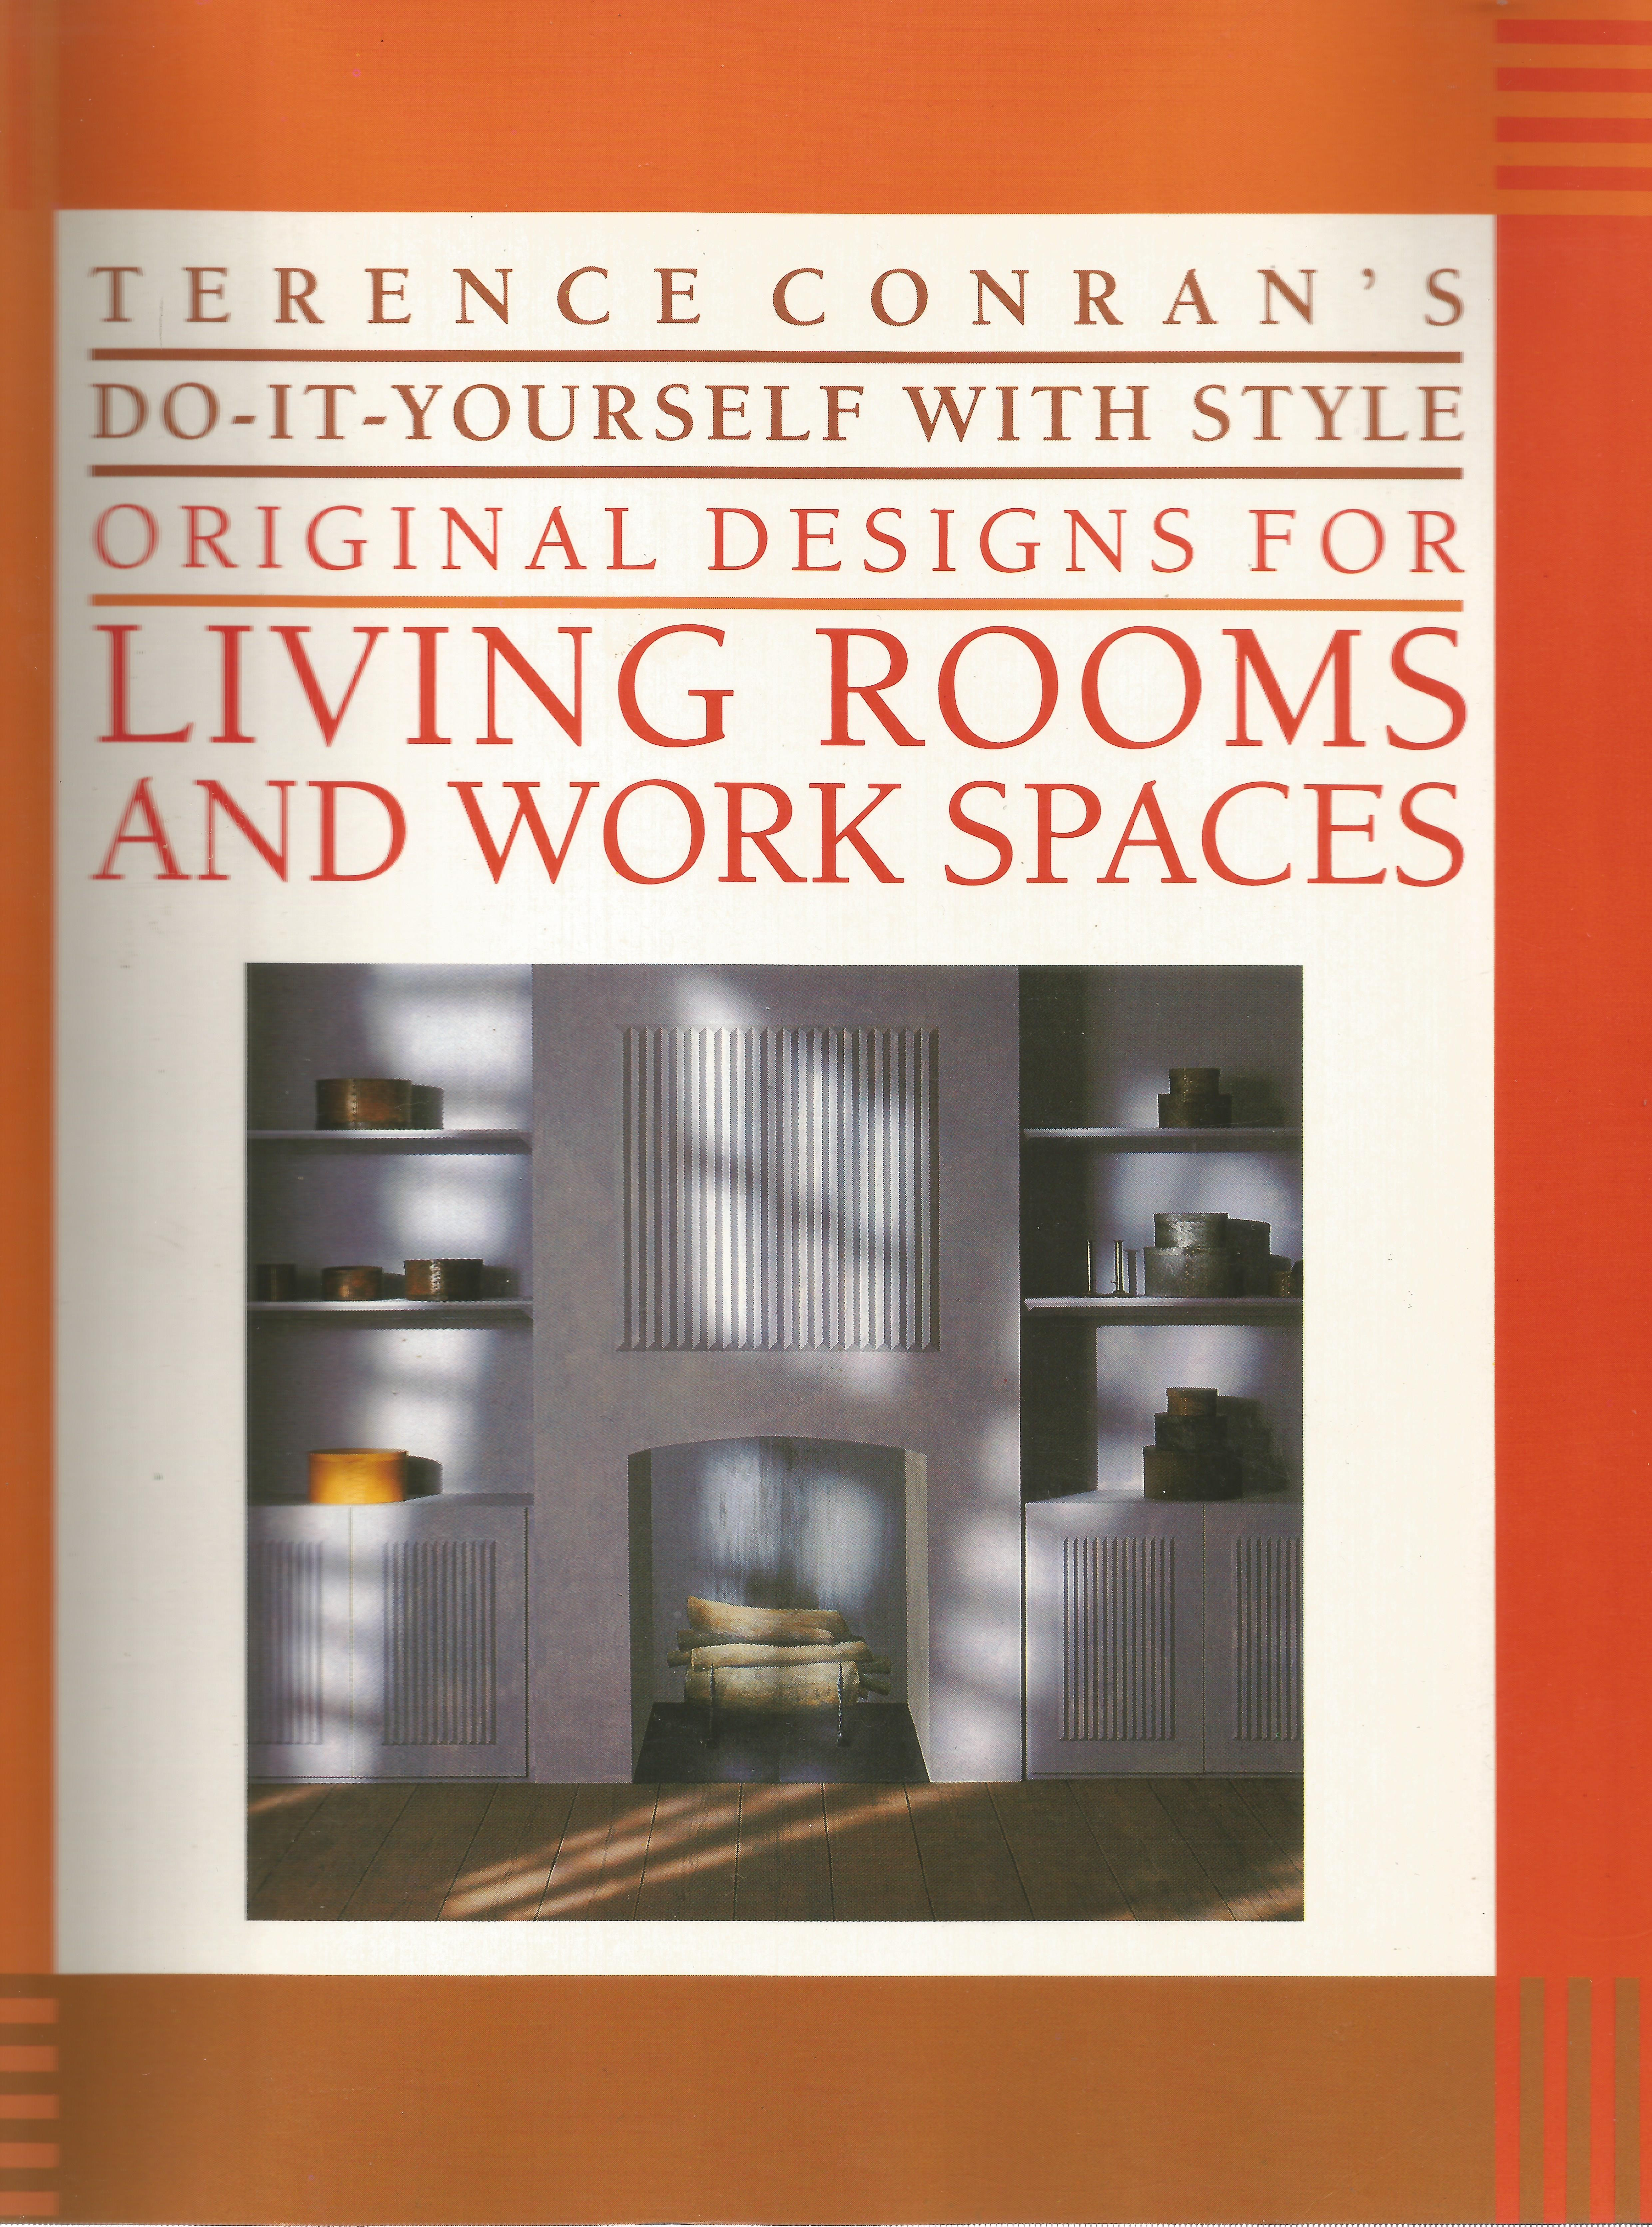 Architecture design terence conran 39 s do it yourself for Do it yourself living room ideas